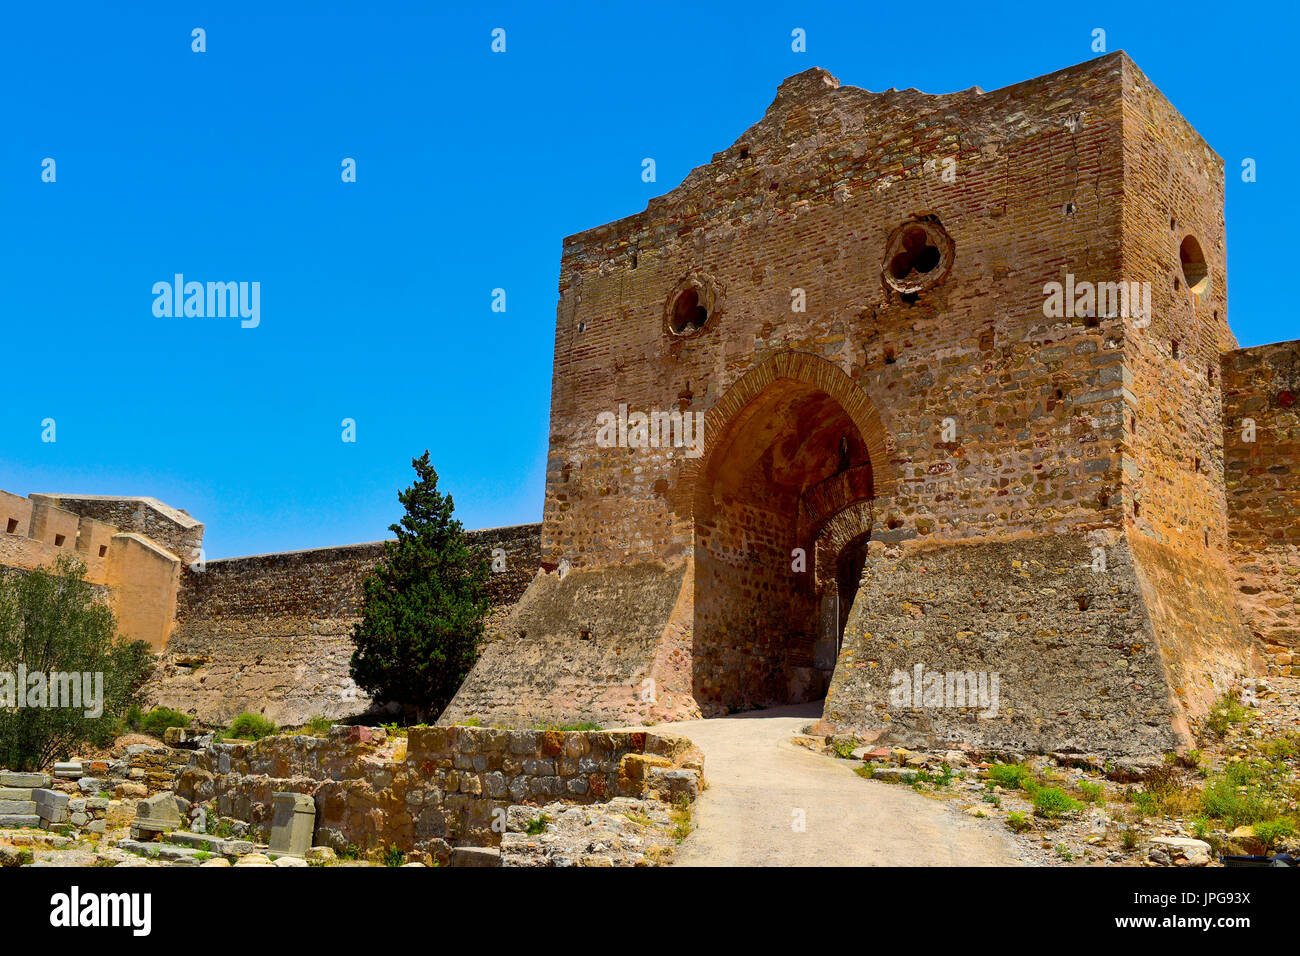 a view of the remains of the Citadel of Sagunto, Spain, in the top of a hill - Stock Image